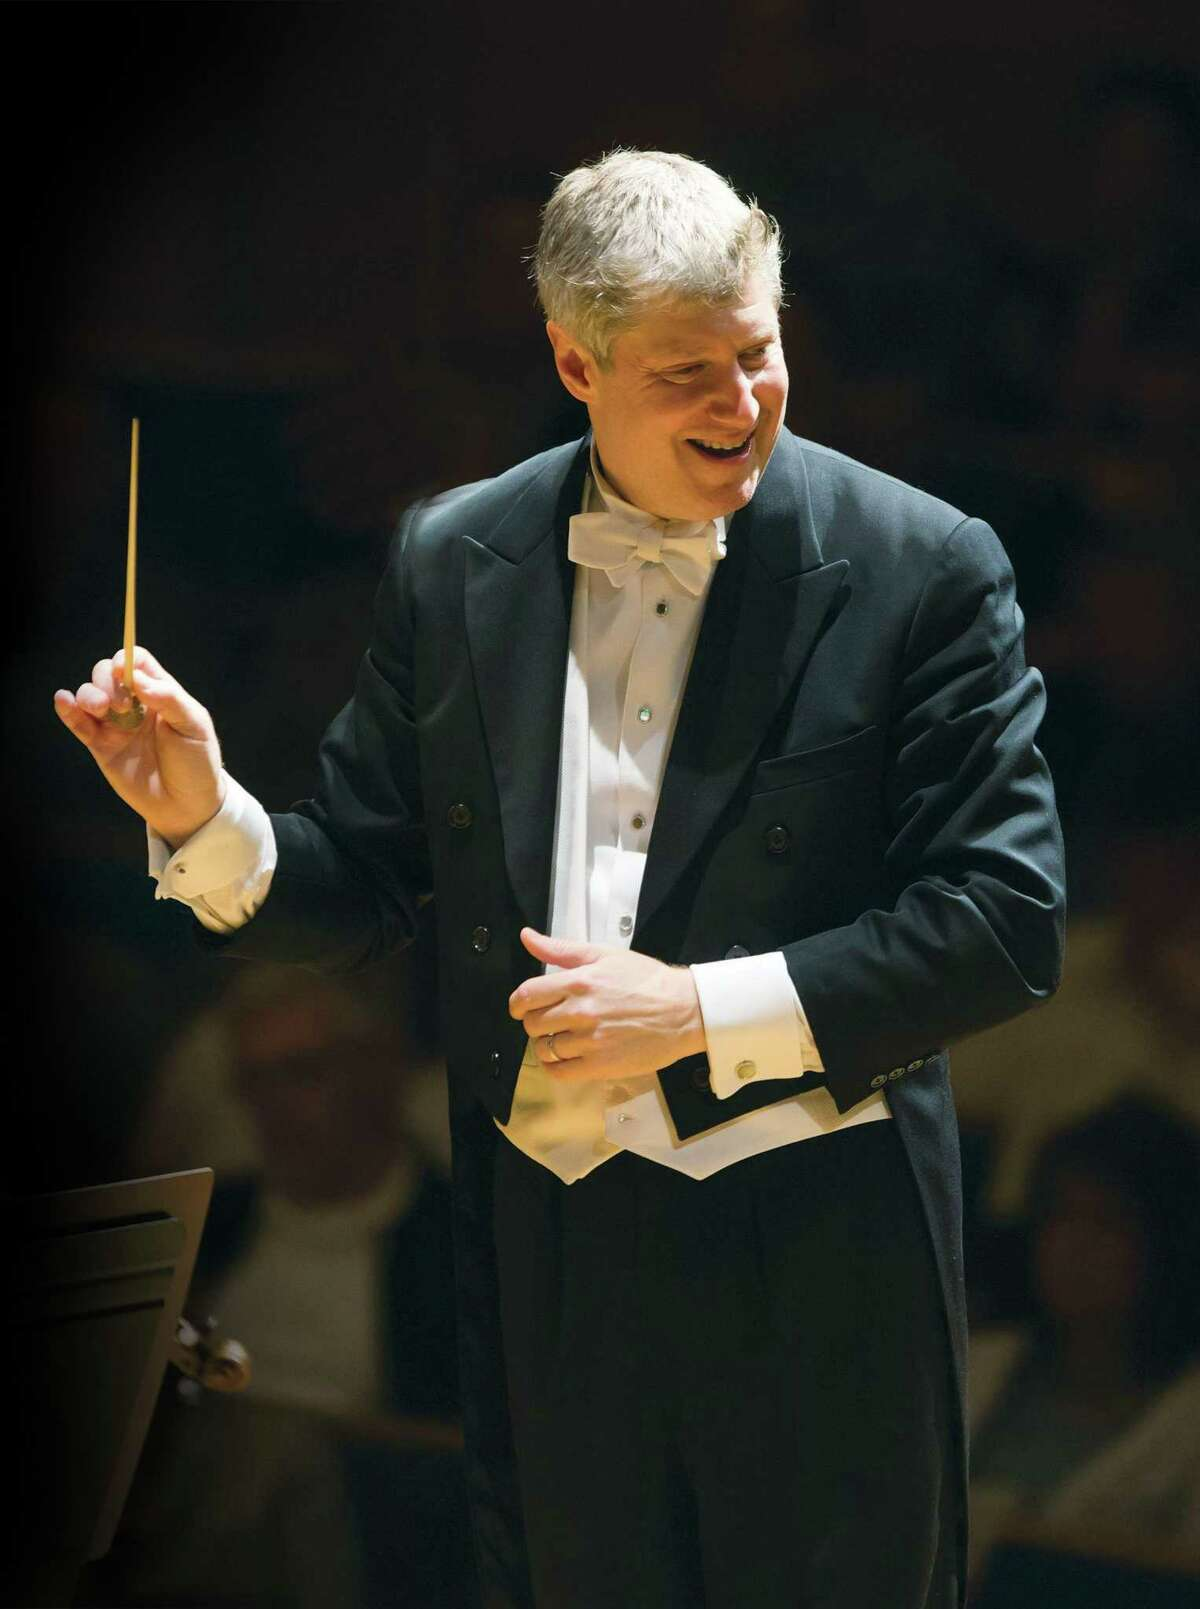 """Michael Stern conducts the Stamford Symphony, which recently dedicated a performance of """"Amazing Grace"""" to front-line health care workers. Each musician's solo recording, done from home, was stitched into an inspiring video by operations manager Tony Melone. Stern says Melone is """"our resident genius in all departments"""" and a pianist who understands music and technology."""